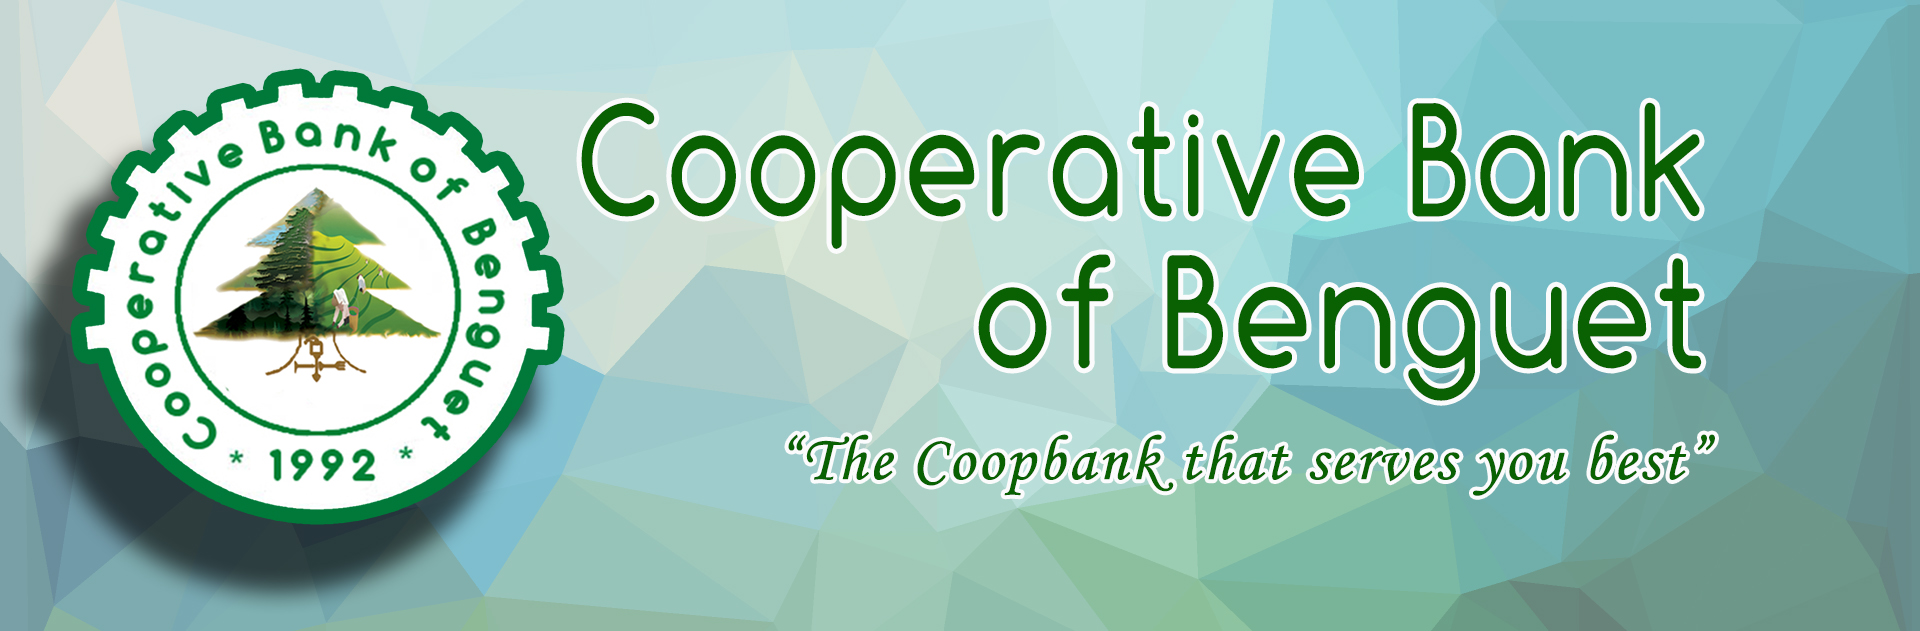 Welcome | Cooperative Bank of Benguet